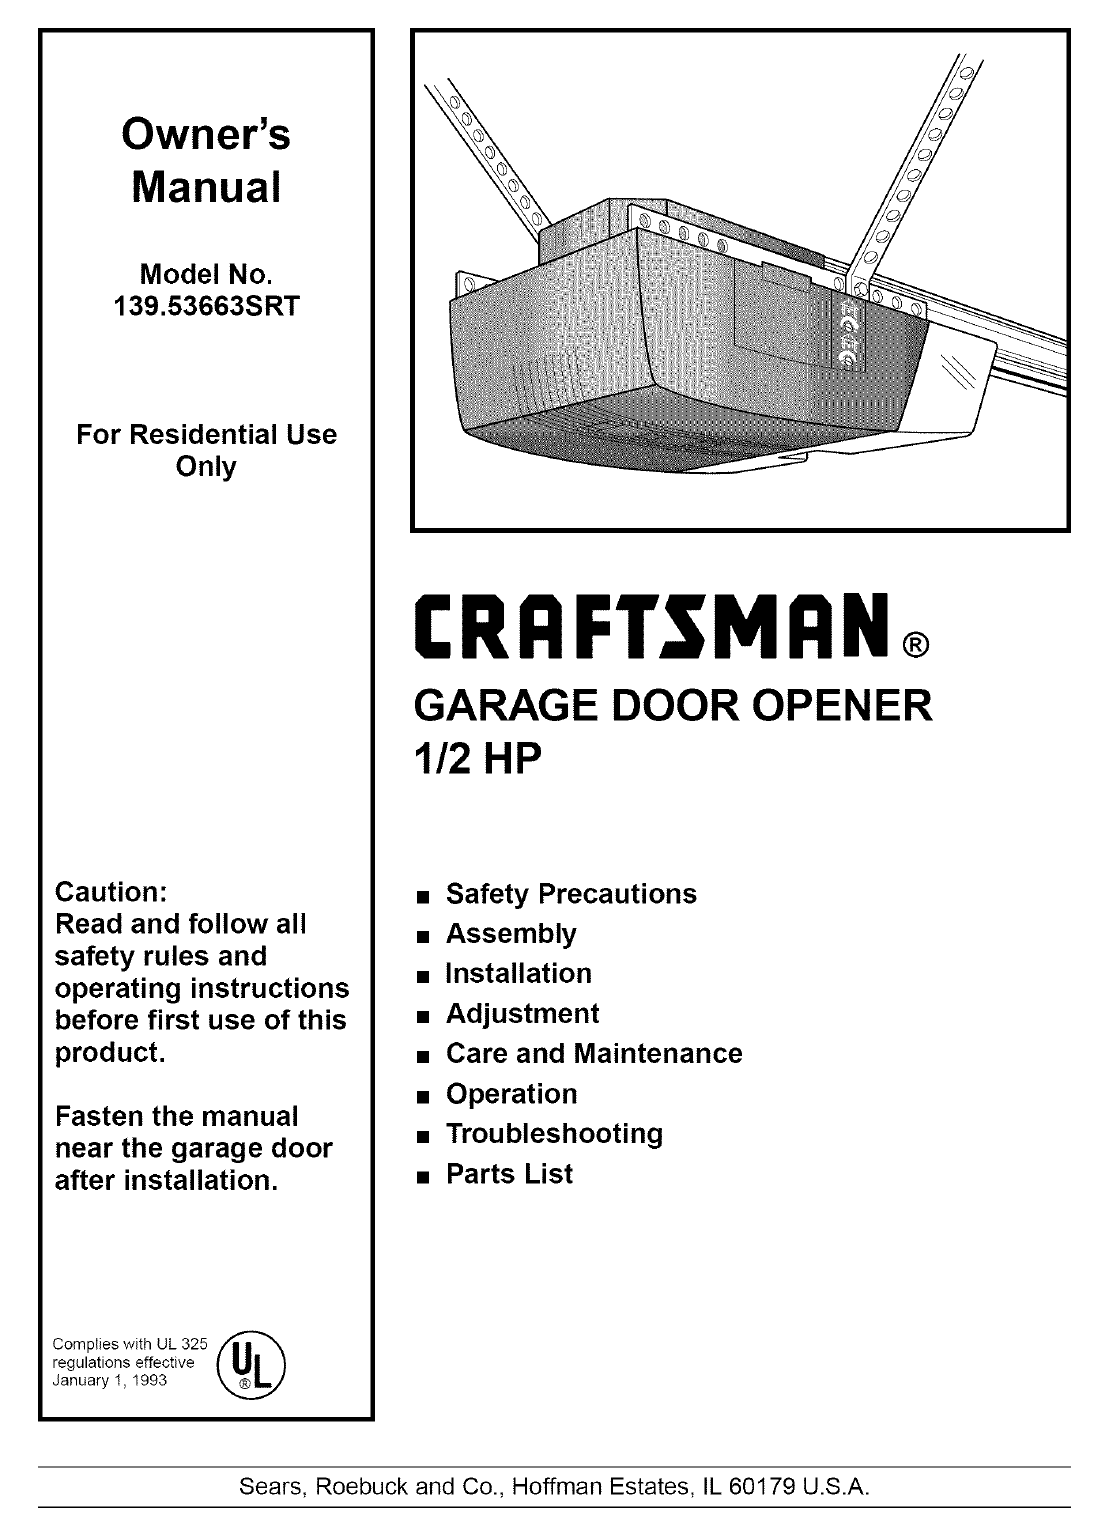 Craftsman 13953663SRT User Manual 1/2 HP GARAGE DOOR OPNER